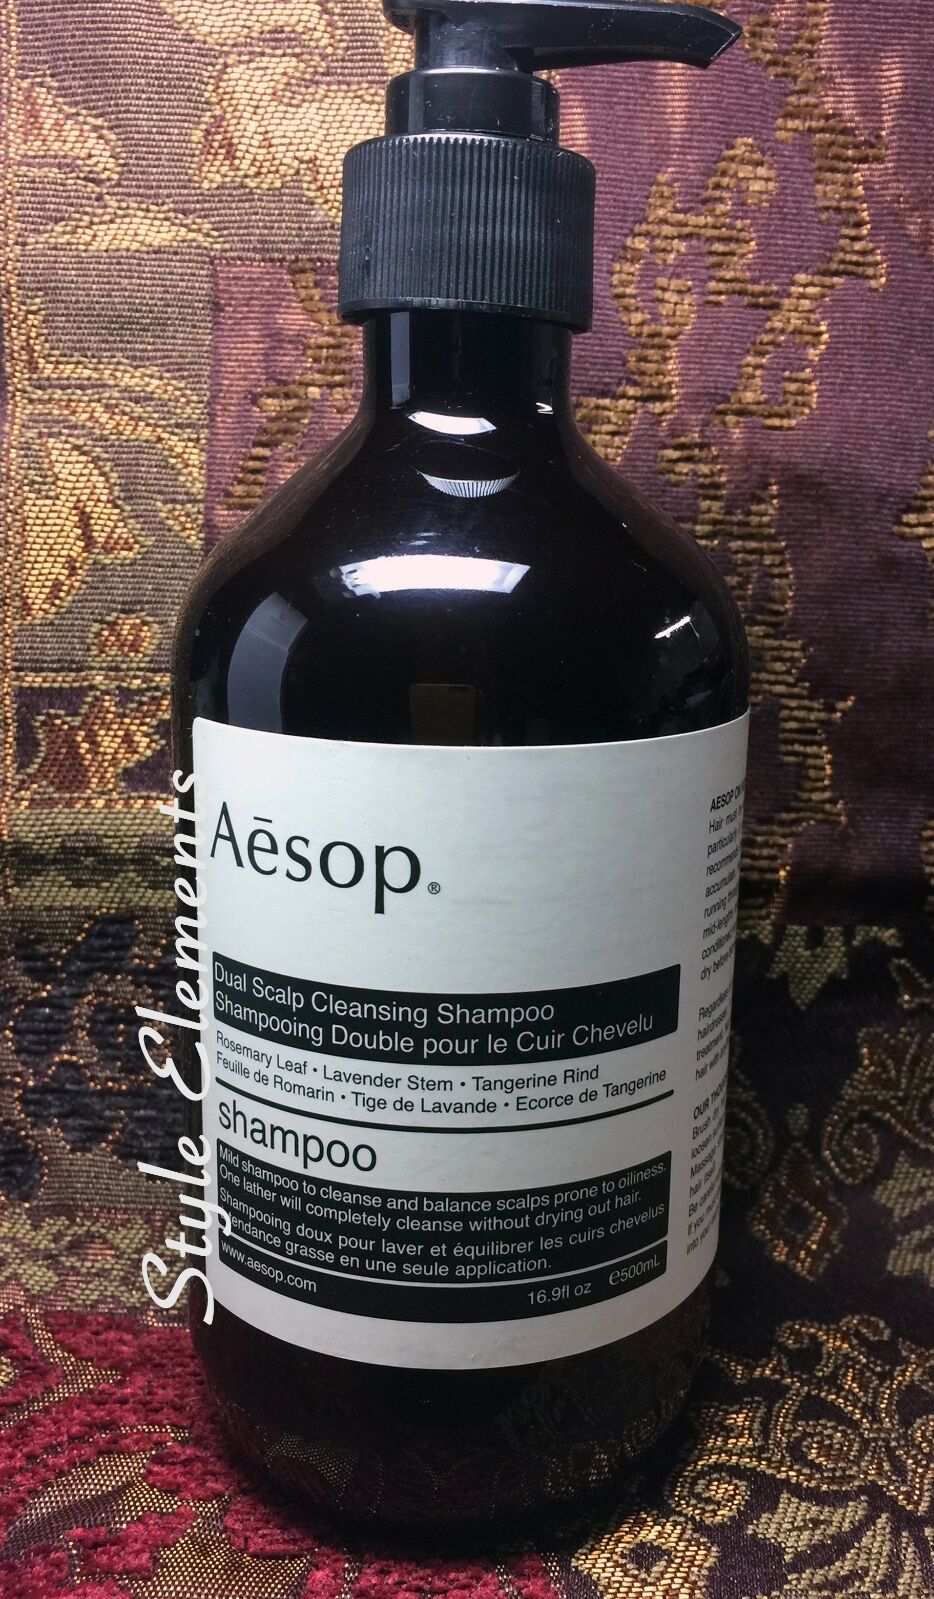 Aesop Dual Scalp Cleansing Shampoo-16.9 fl oz/500 mL-New-